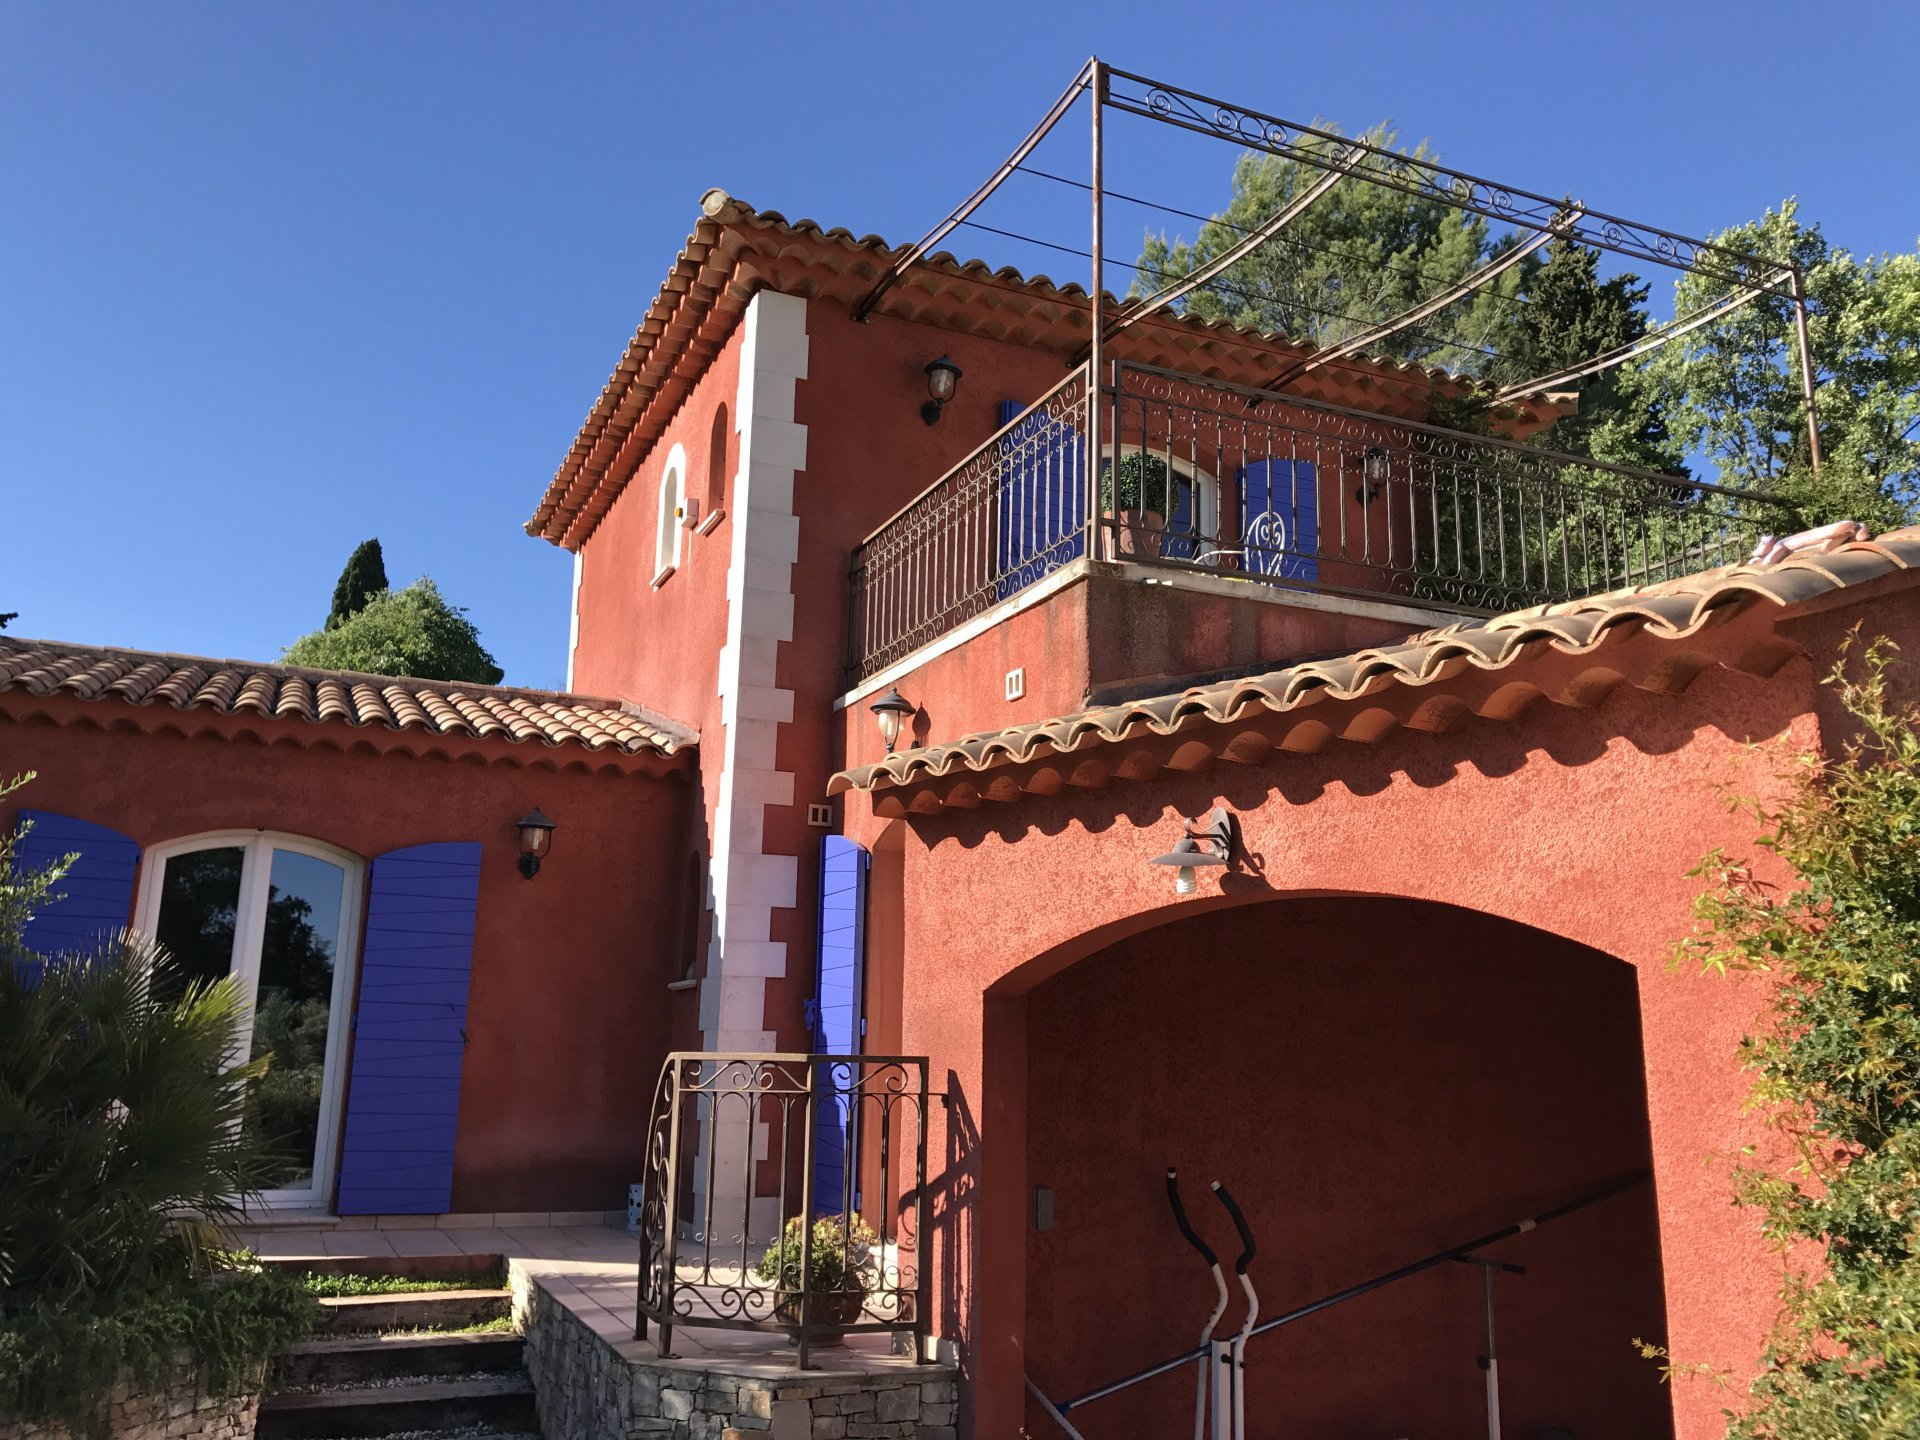 Good quality house for sale in a nice area.